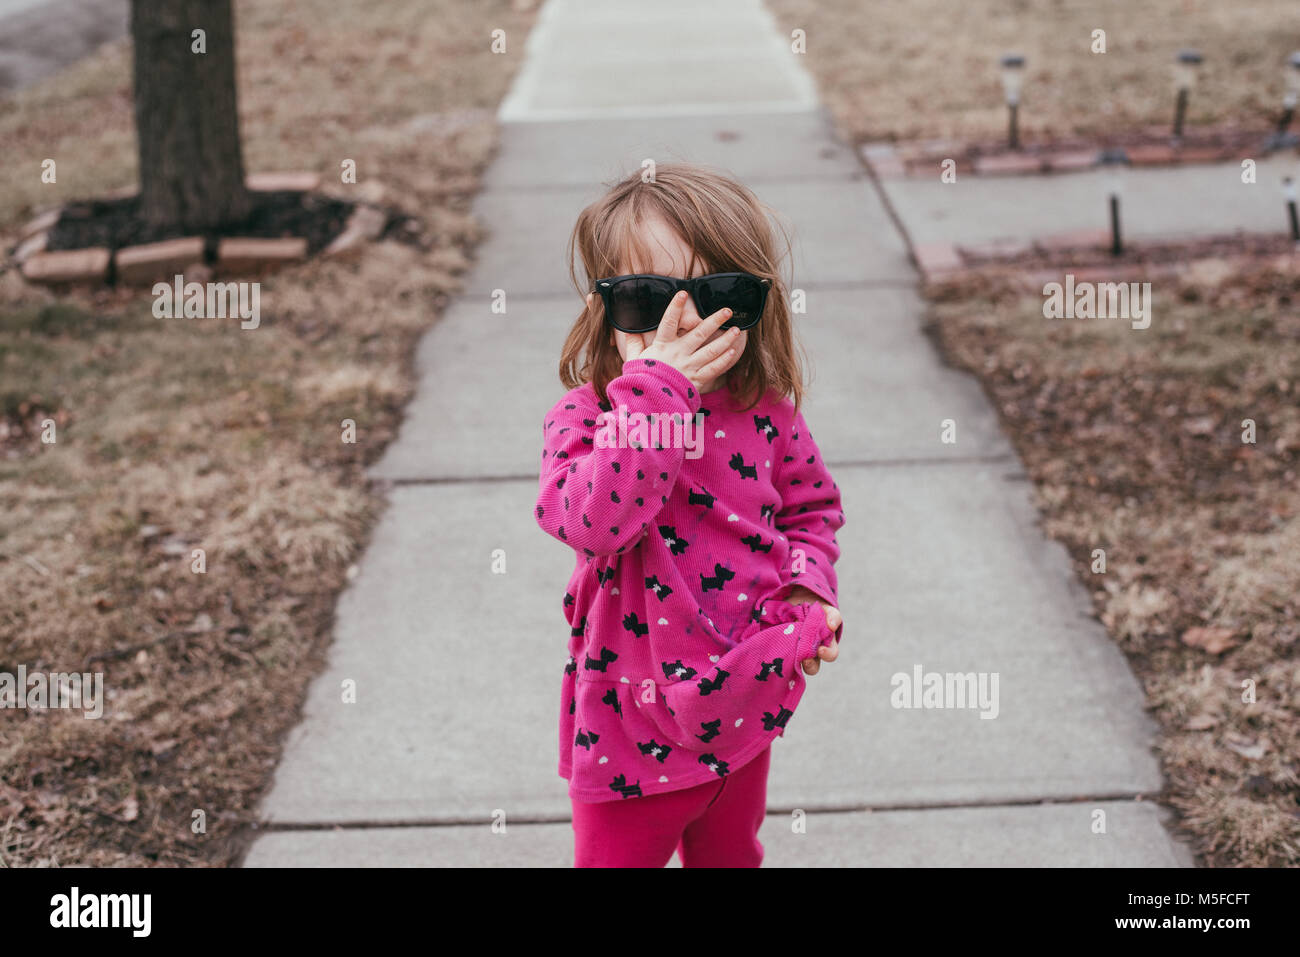 A toddler girl wearing a pink shirt and sunglasses, standing on a sidewalk on a warm, sunny day. - Stock Image